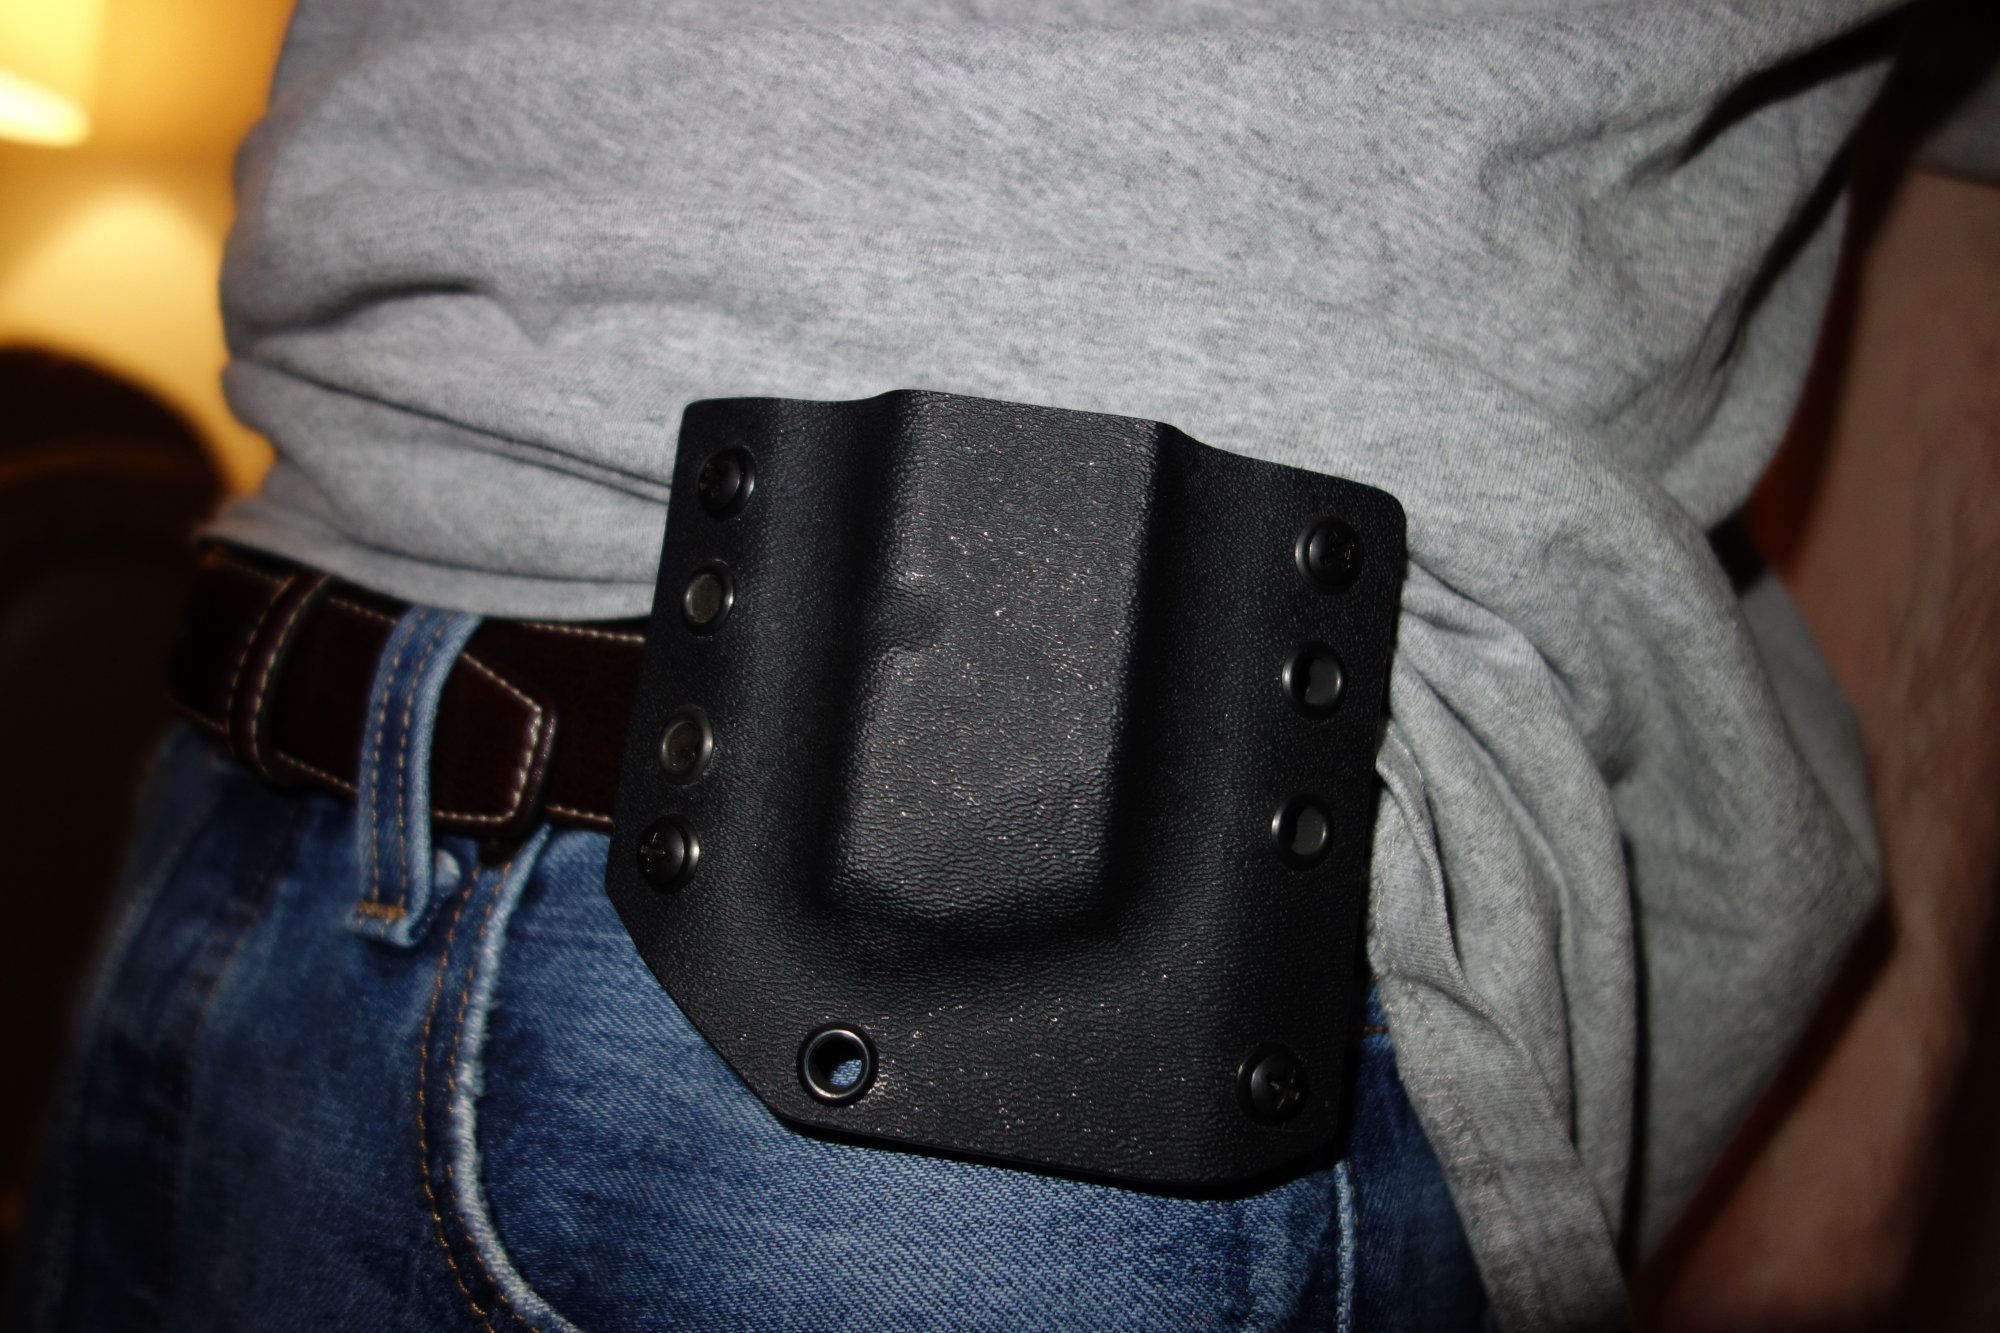 Bravo Concealment Holsters BCH DOS Holster Drop Out of Sight Holster Inside the Waistband Holster for Glock 19 G19 Tactical Pistol Concealment Holster David Crane DefenseReview.com DR 4 Bravo Concealment (BC) D.O.S. (Drop Out of Sight) Holster: Covert Tactical Kydex IWB Concealed Carry (CCW) Holster for Glock 19 Compact 9mm Pistol, and Pistol Mag Carrier/Pouch